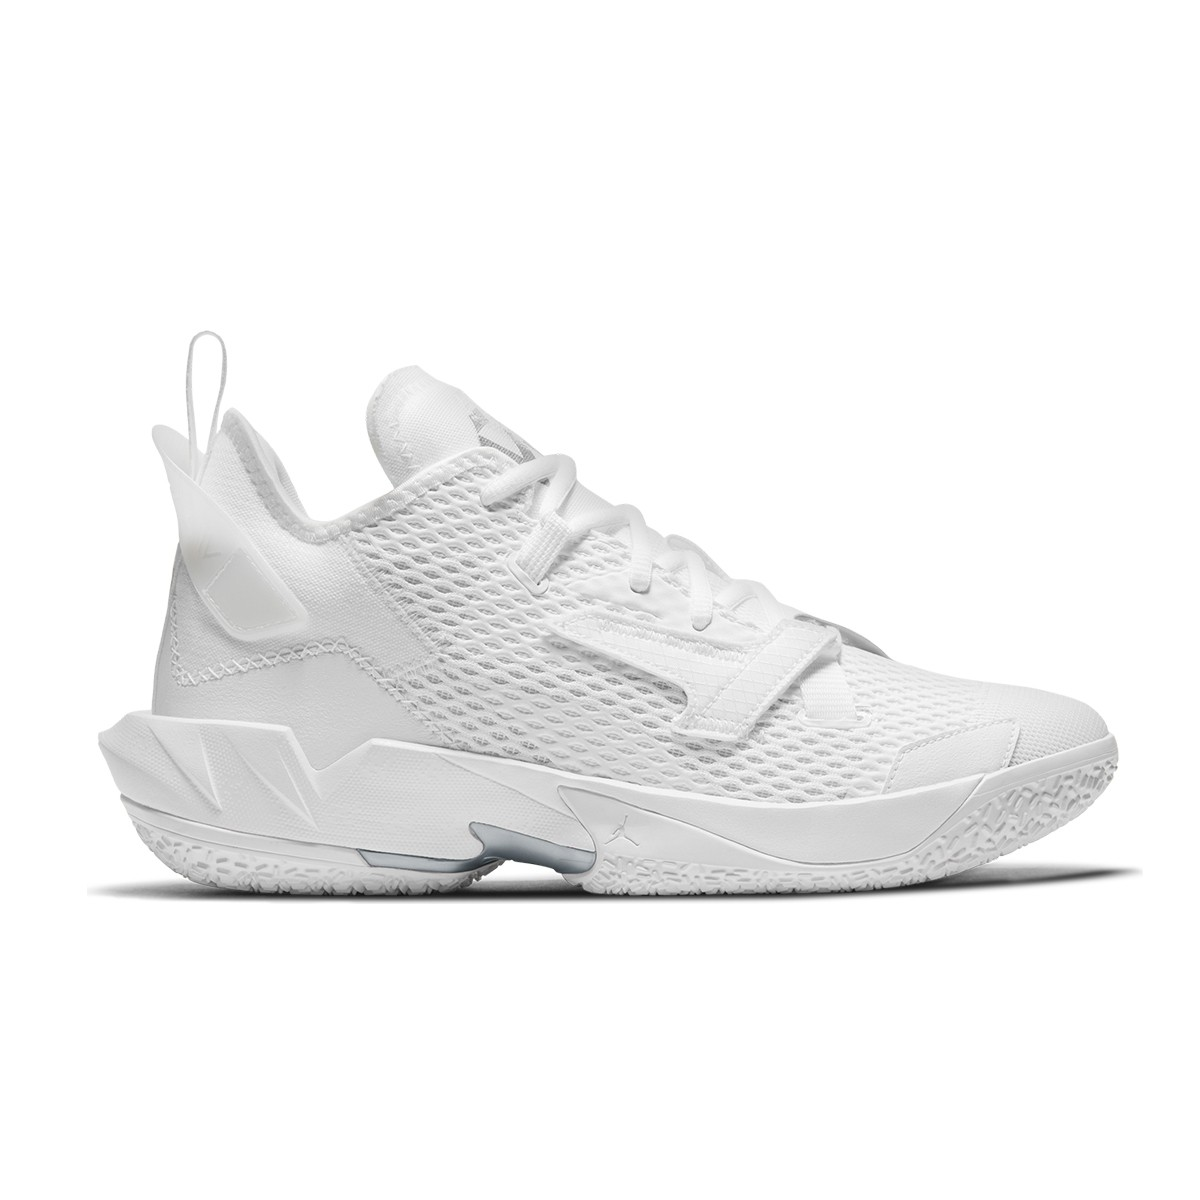 Jordan Why Not Zer0.4 'Triple White'